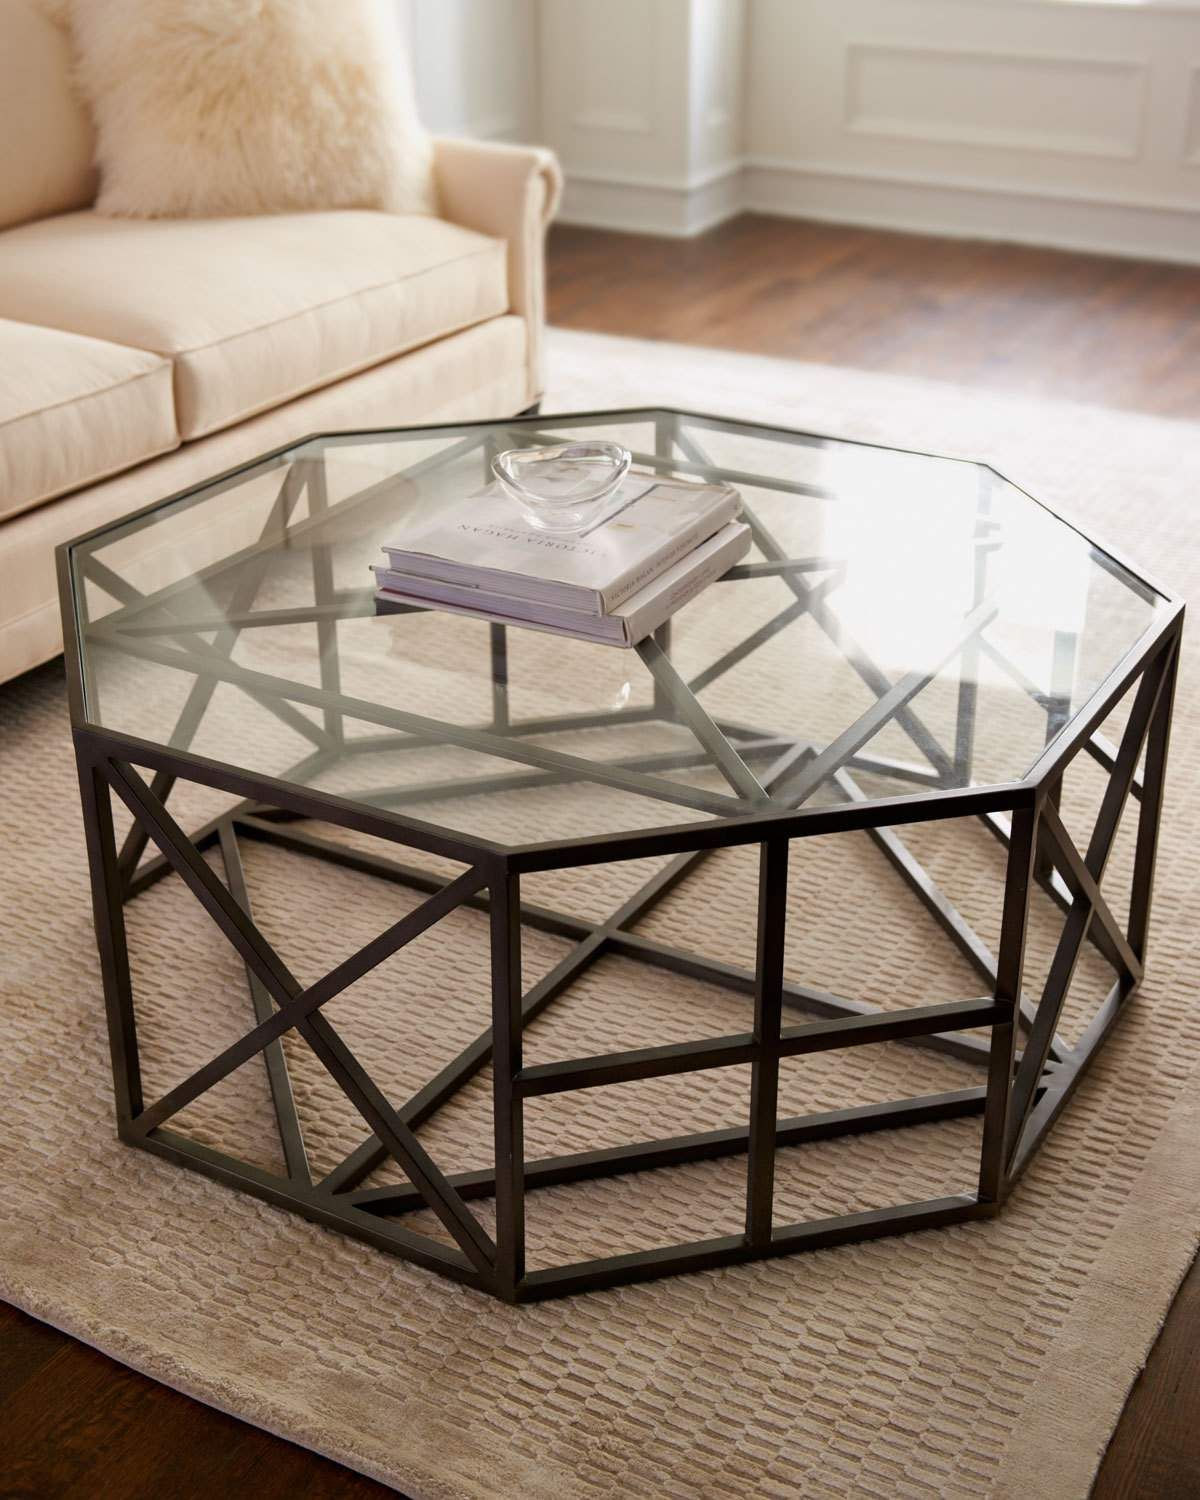 Glass coffee table in living room octagon coffee table  products  pinterest  coffee top designers